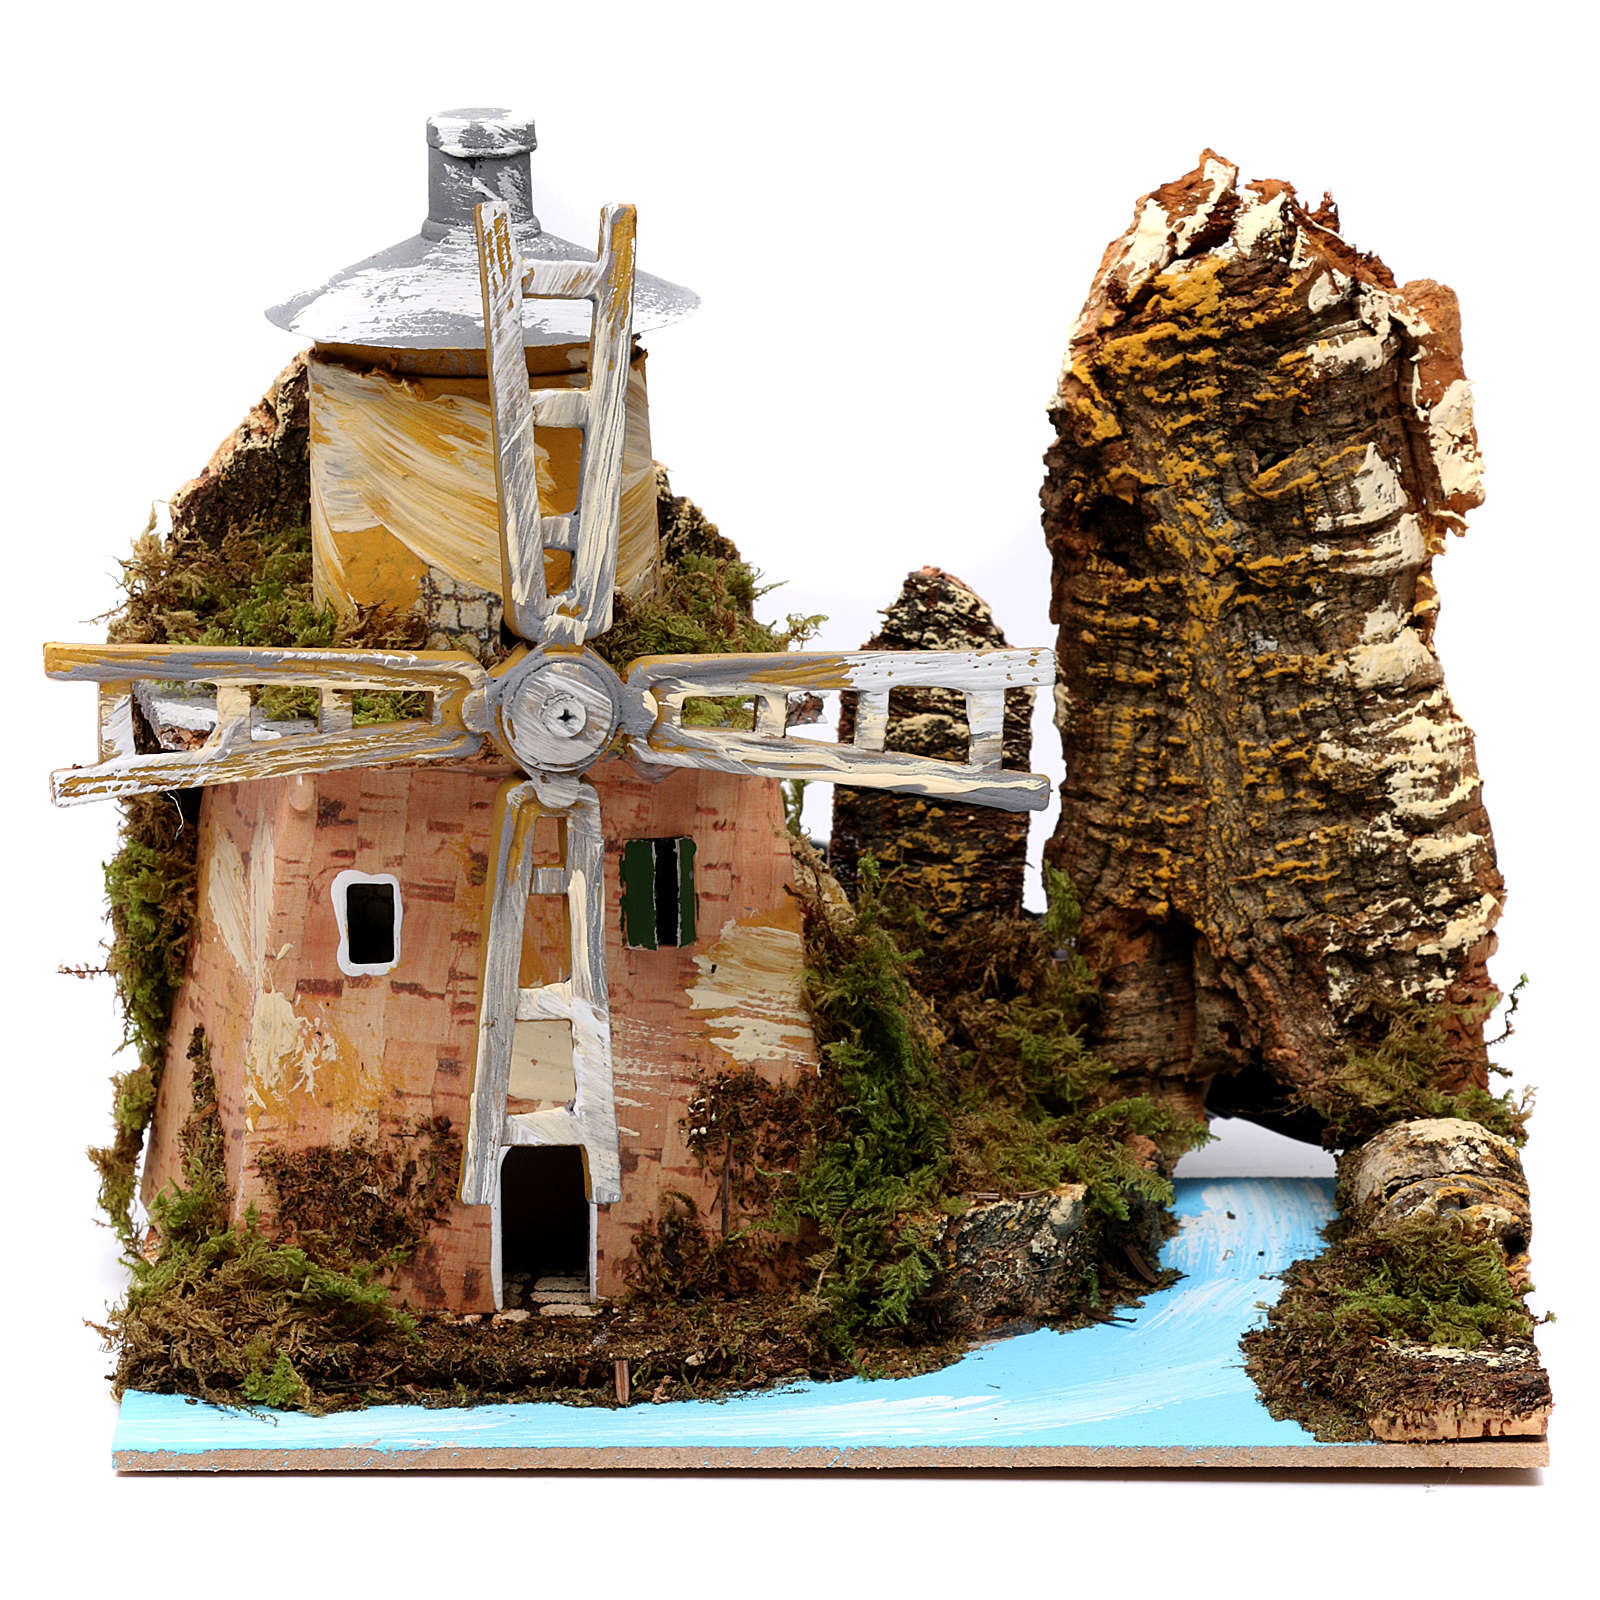 Water mill by the river for Nativity Scene 19x20x14cm 4